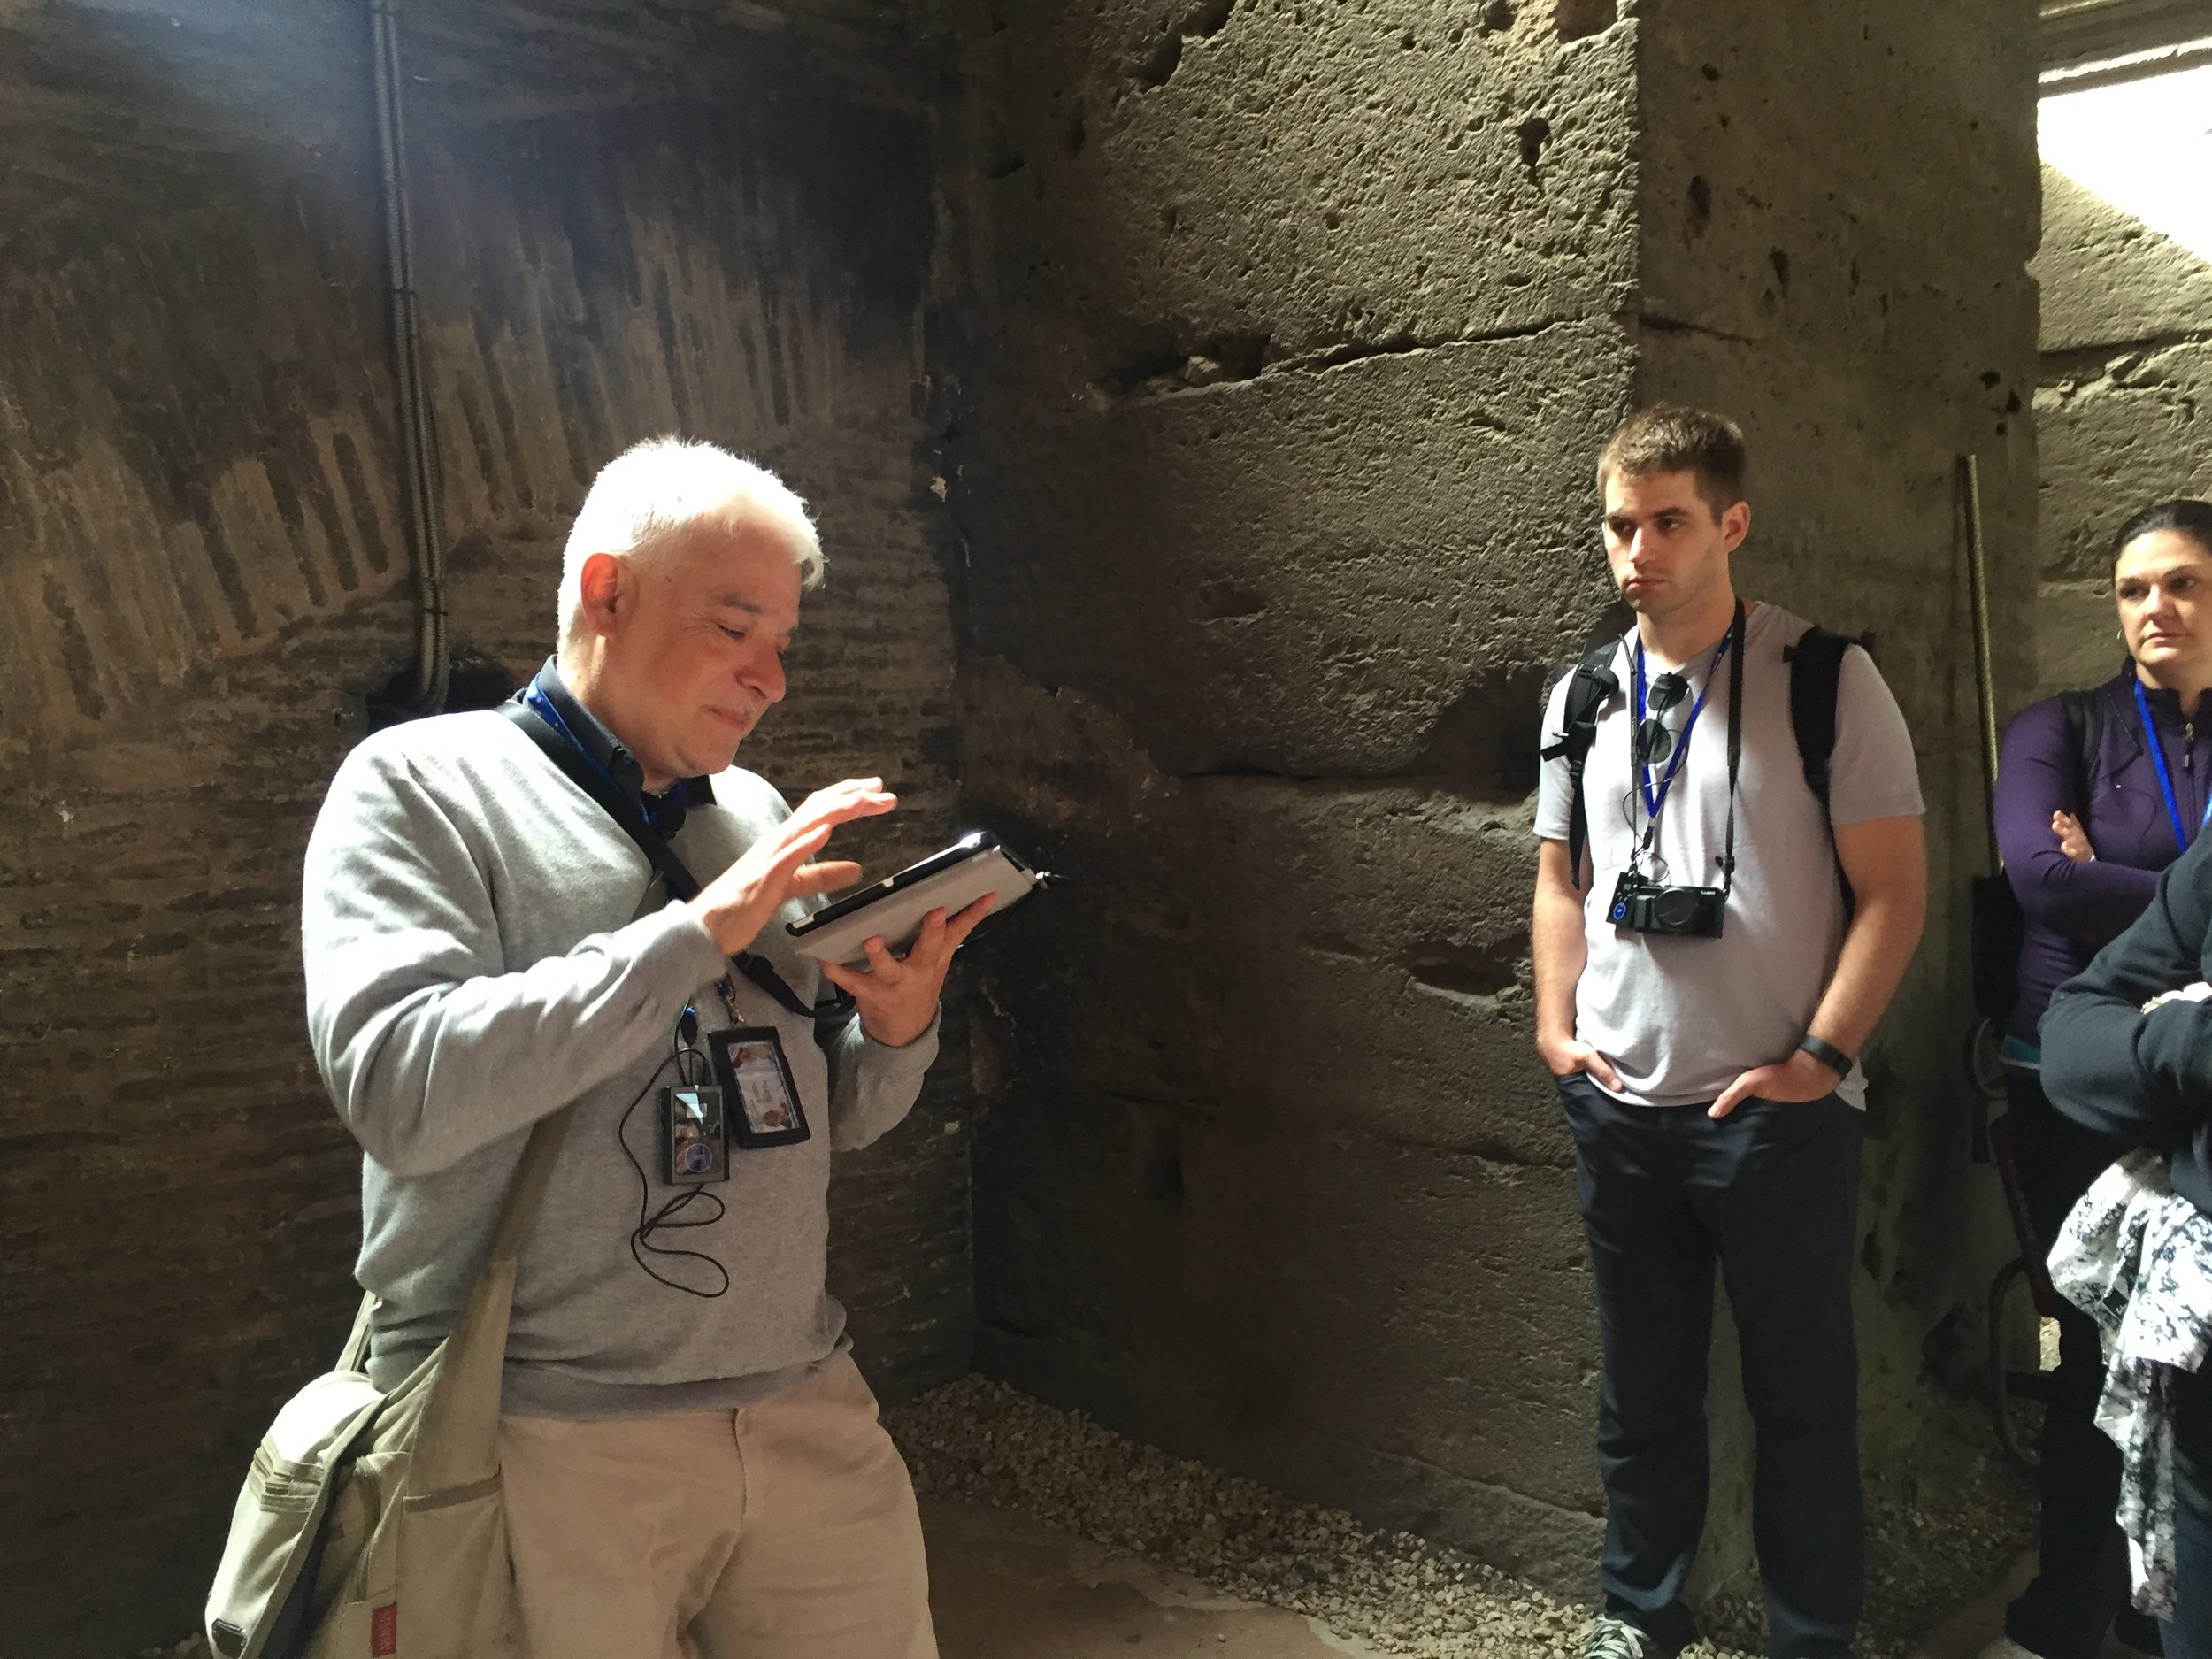 This was our dude, Guido the Guide. He had such wonderful personality and  made  our trip to the Colosseum complete. We have no affiliation with Walks of Italy, but would highly recommend their  Colosseum tour .